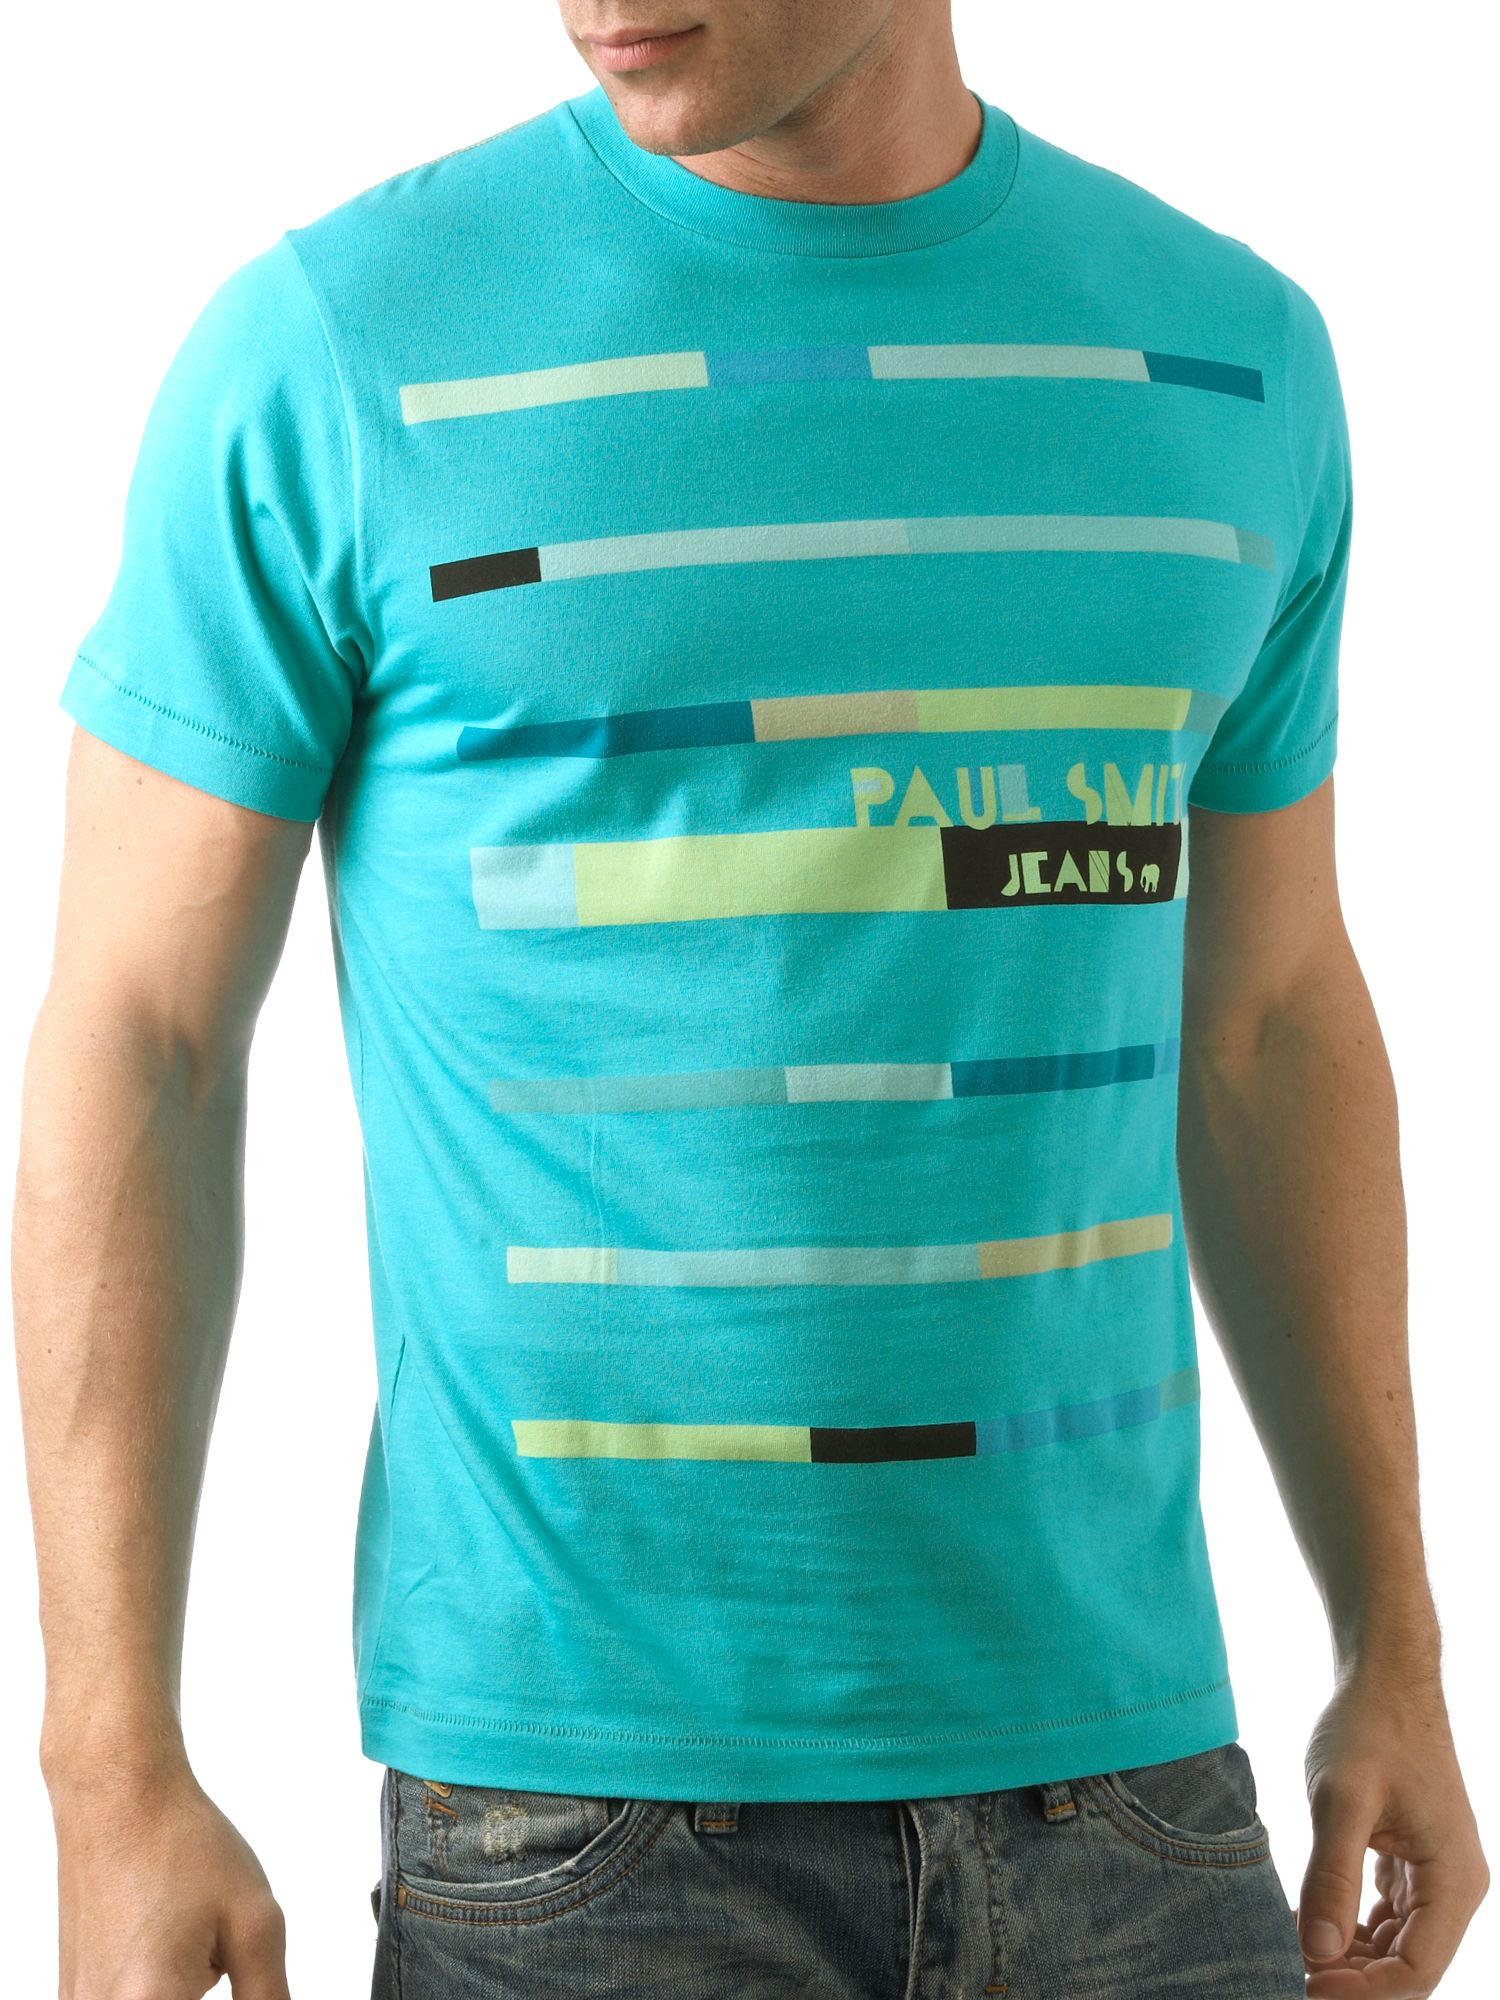 Paul Smith Jeans , lines t-shirt product image